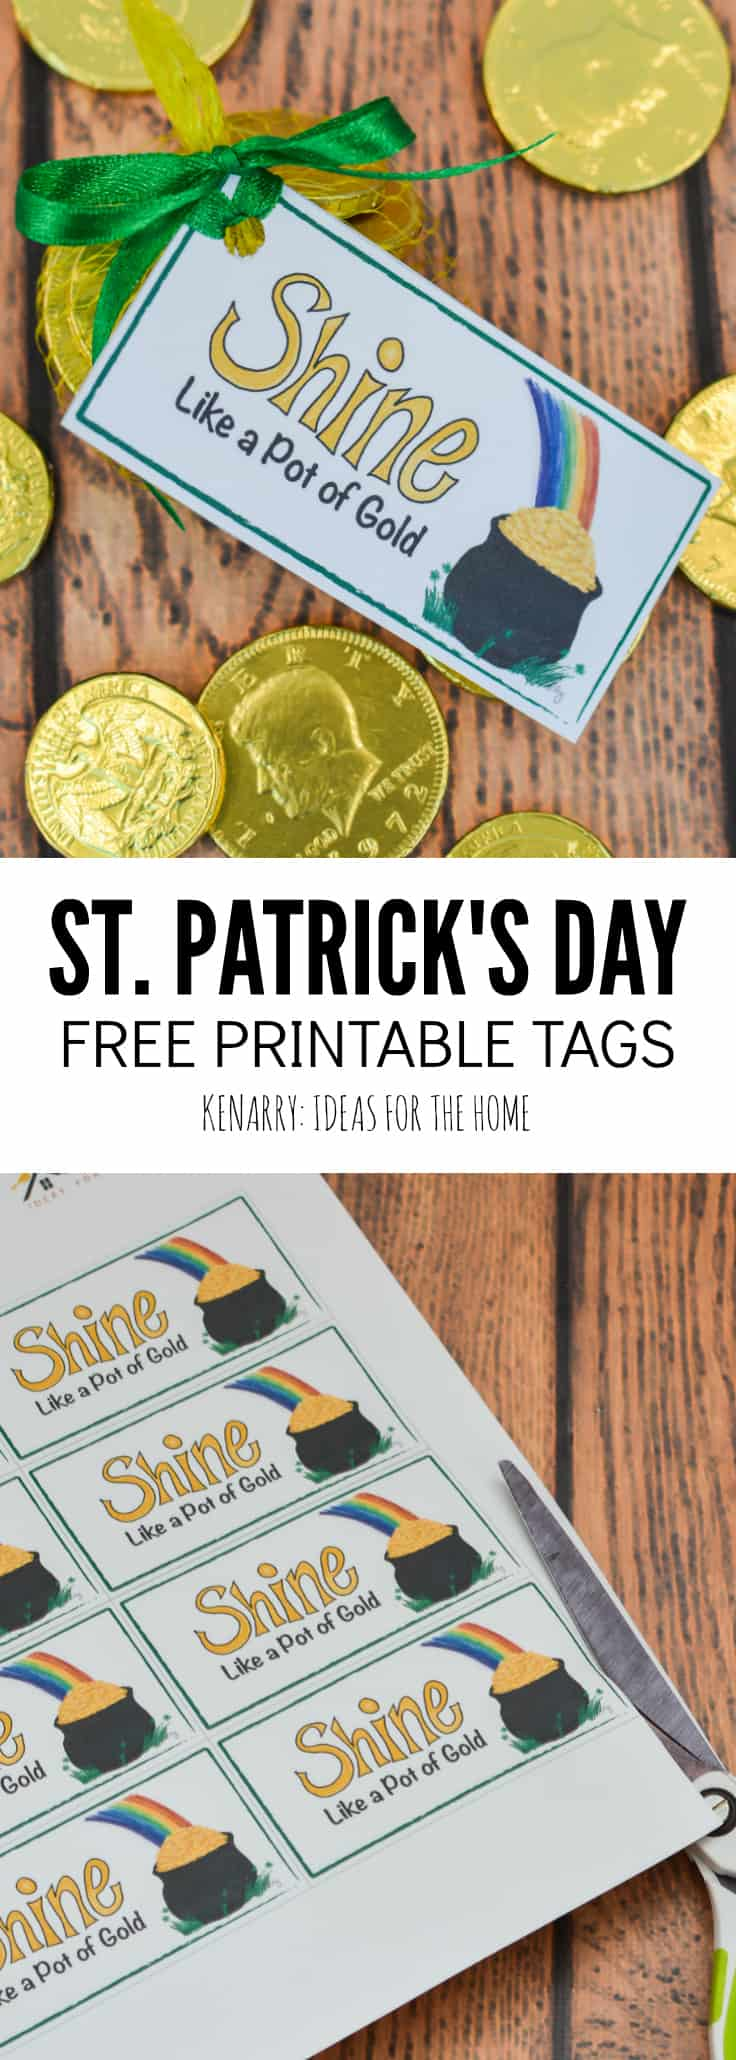 These free printable treat tags are so cute! They're perfect for St. Patrick's Day party favors and feature a pot of gold and a colorful rainbow for both kids and adults.